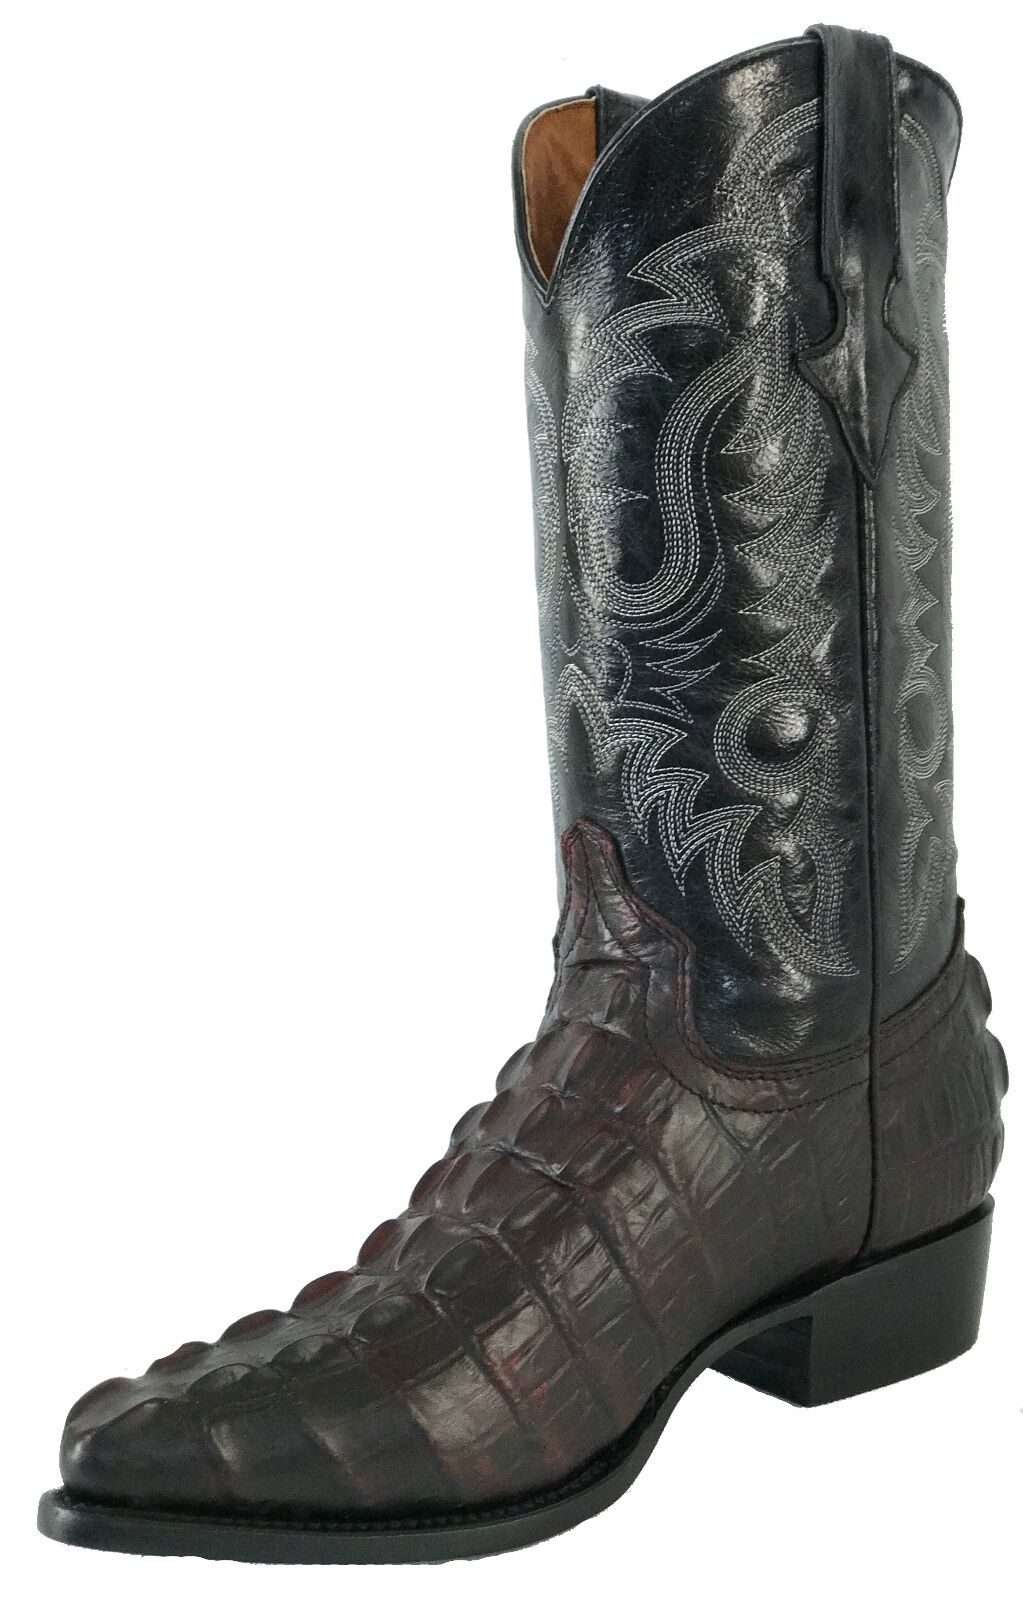 Men's New Leather Crocodile Tail Design Rodeo Western Cowboy Boots J Toe Cherry